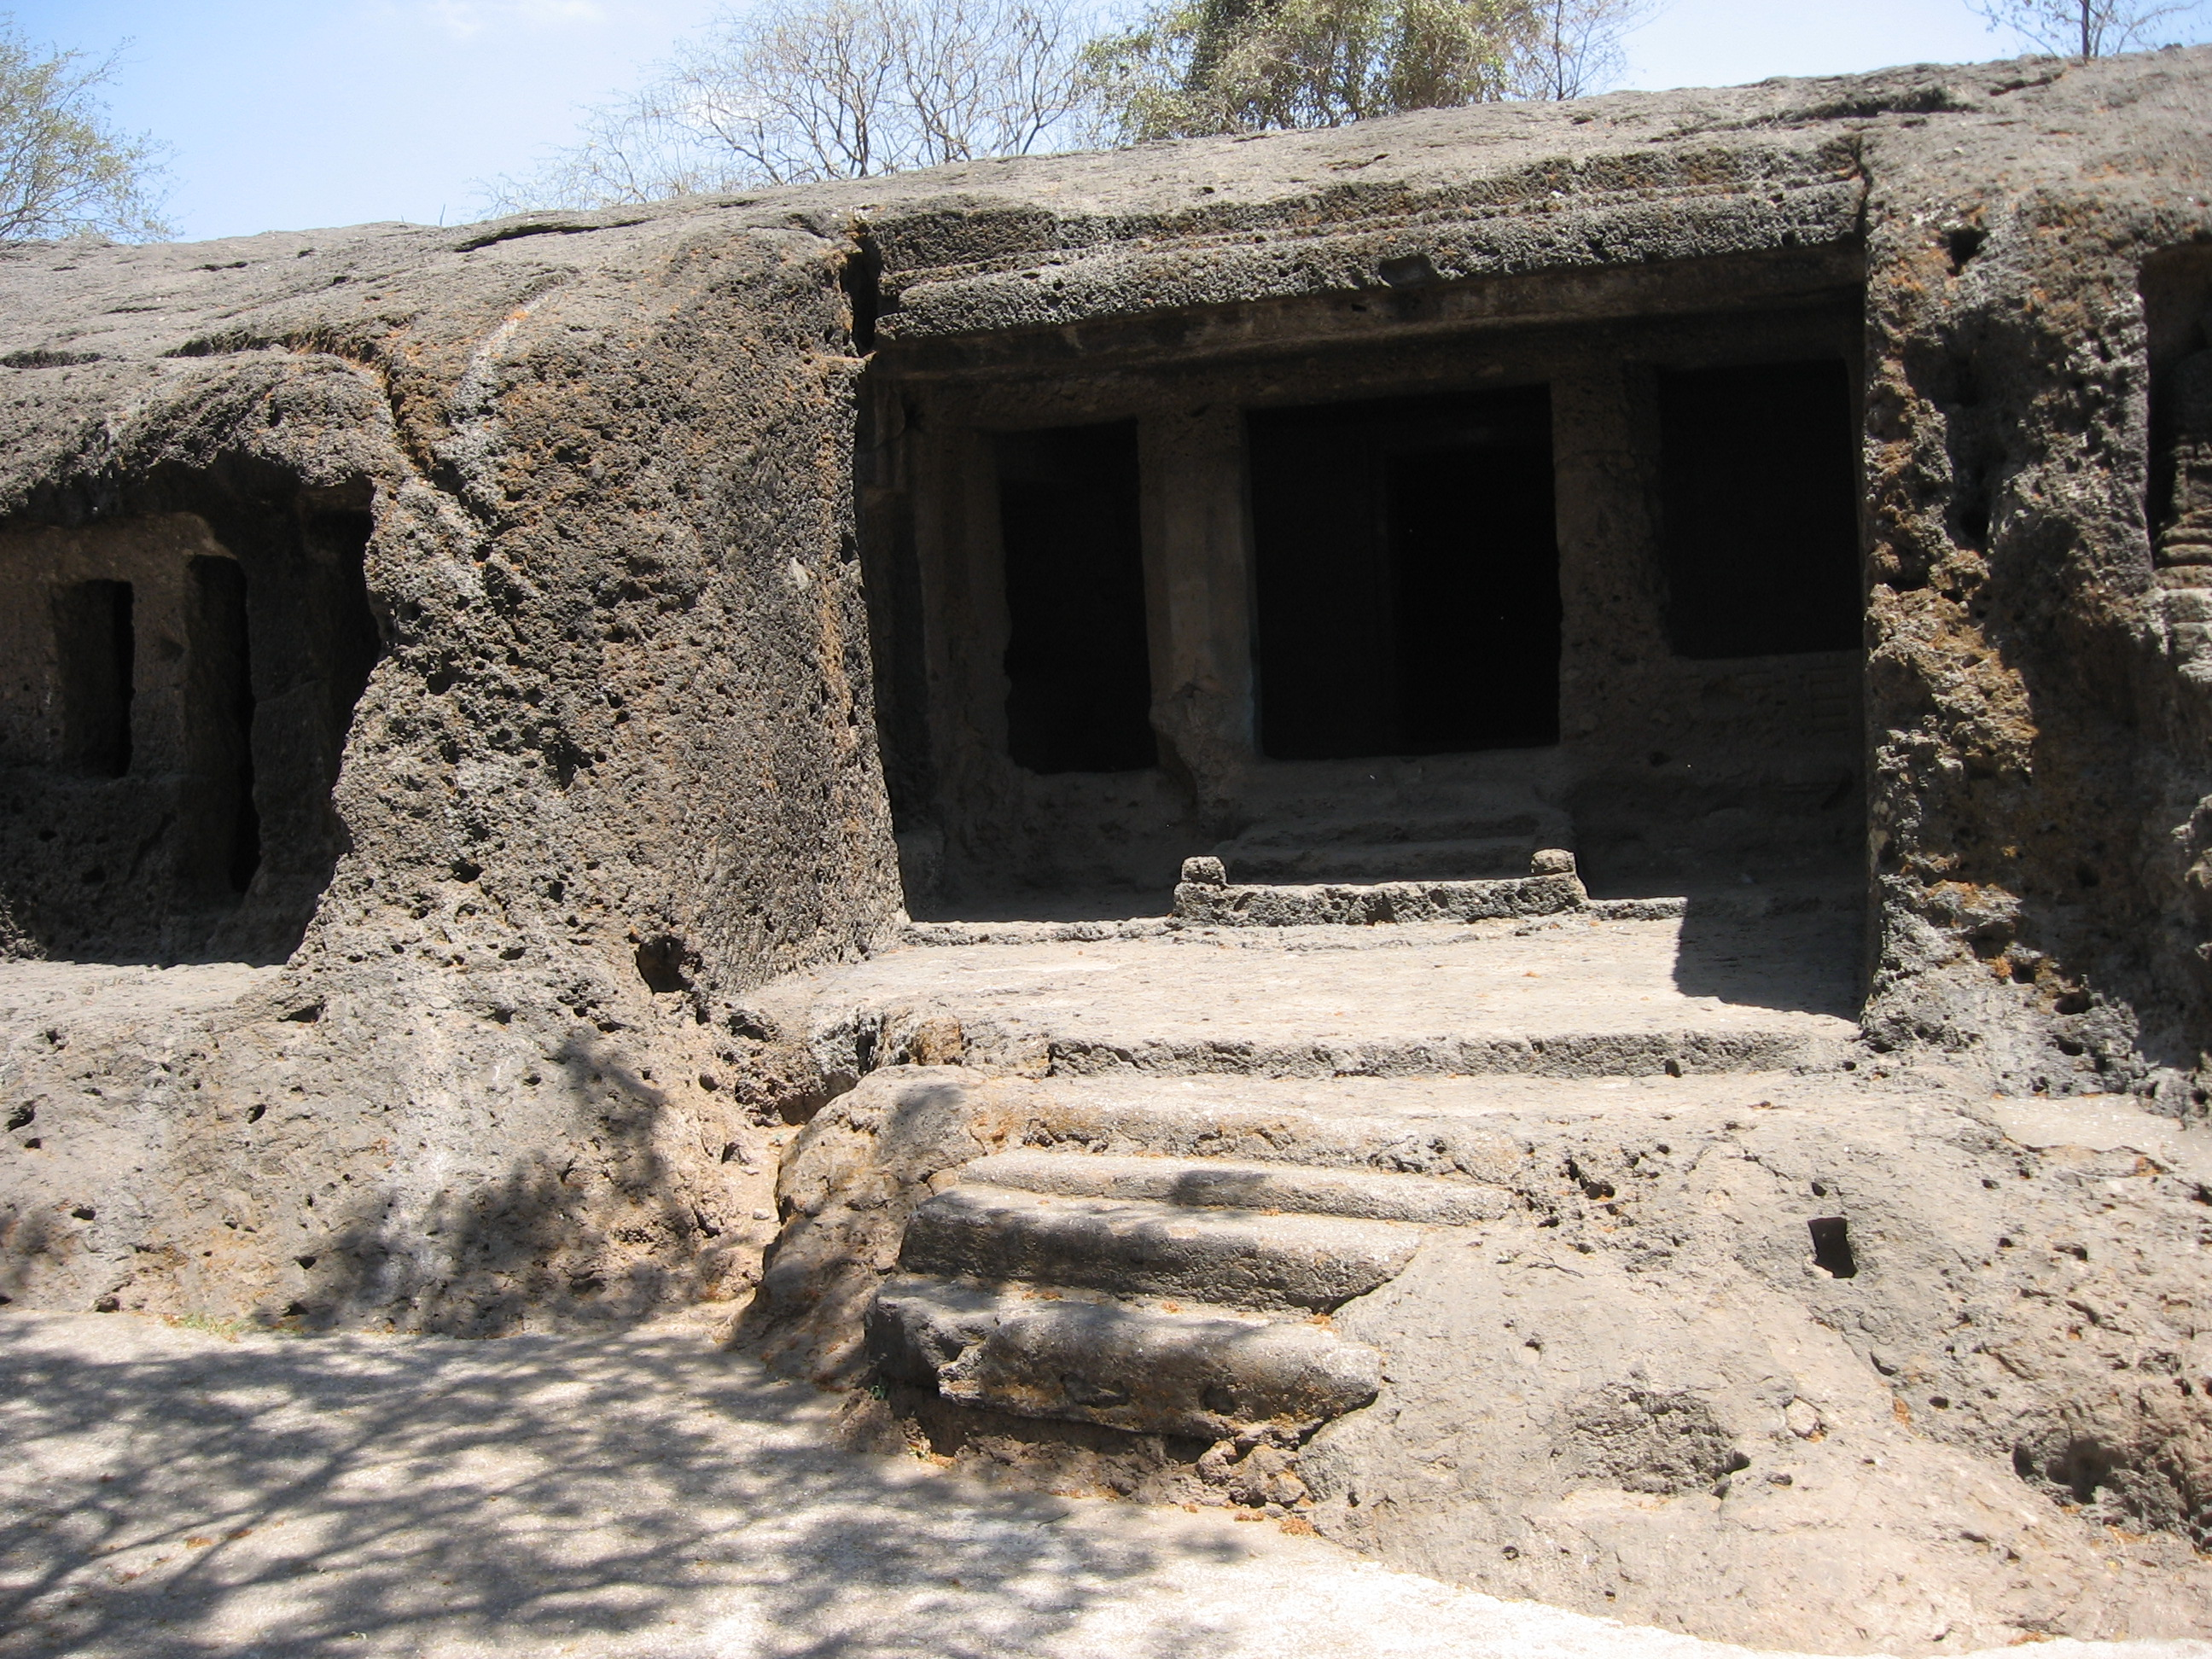 File:Mahakali caves 3.jpg - Wikipedia, the free encyclopedia